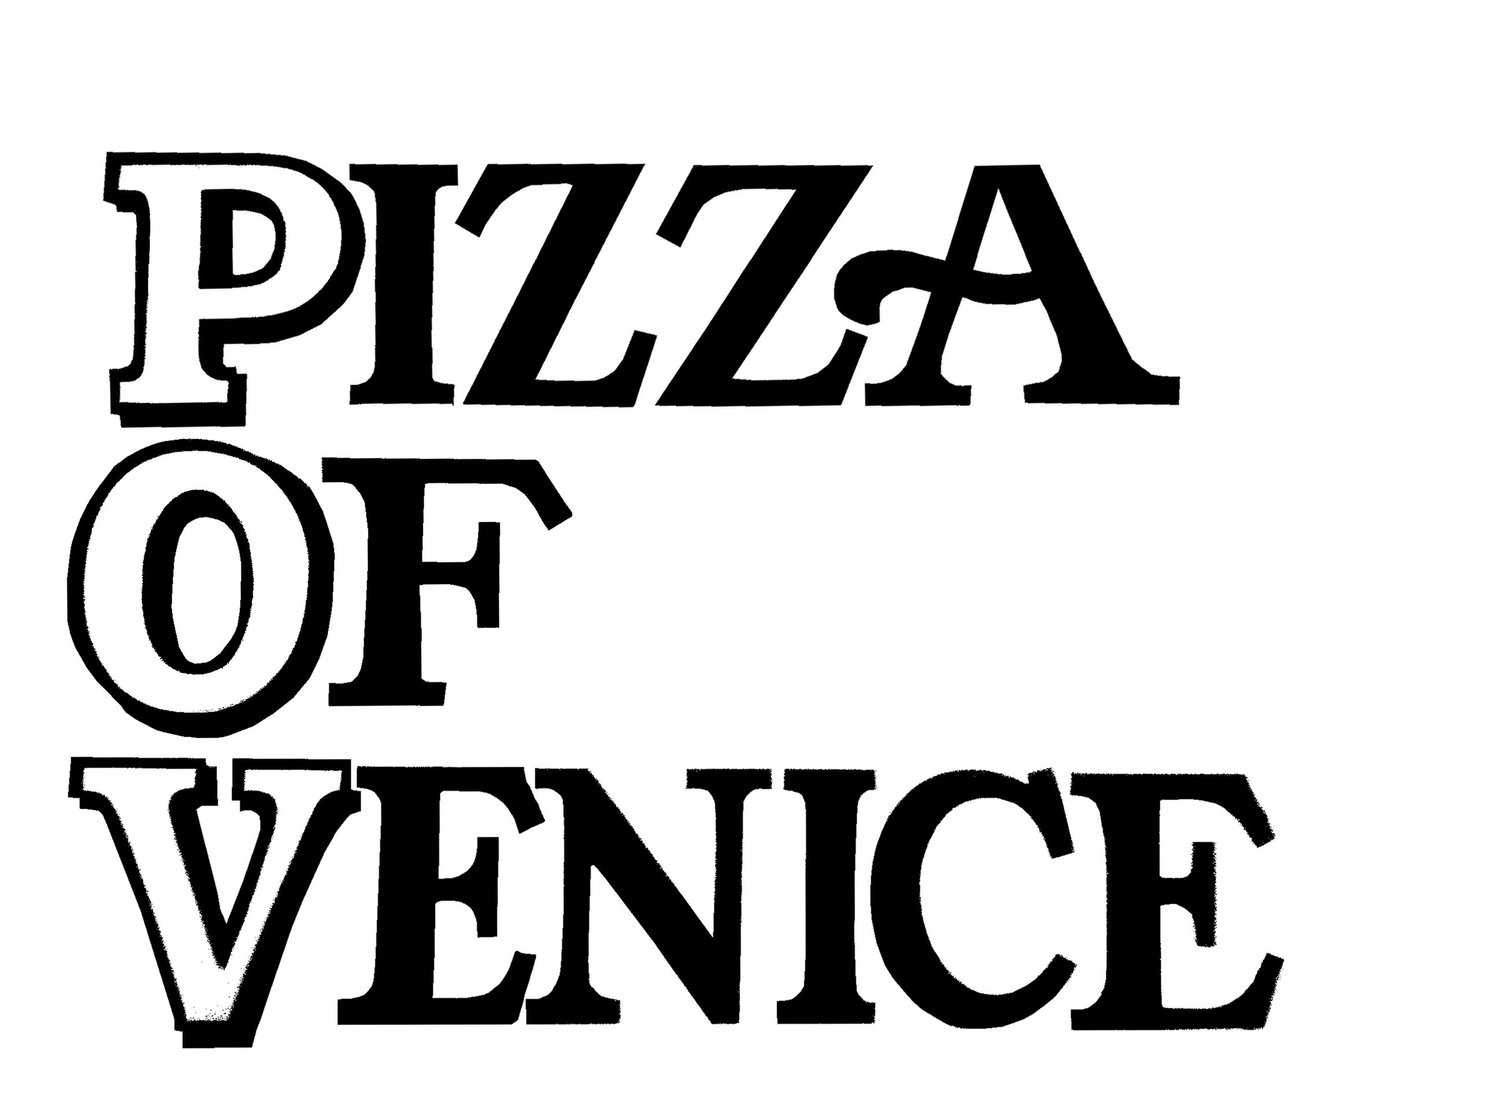 Pizza Of Venice